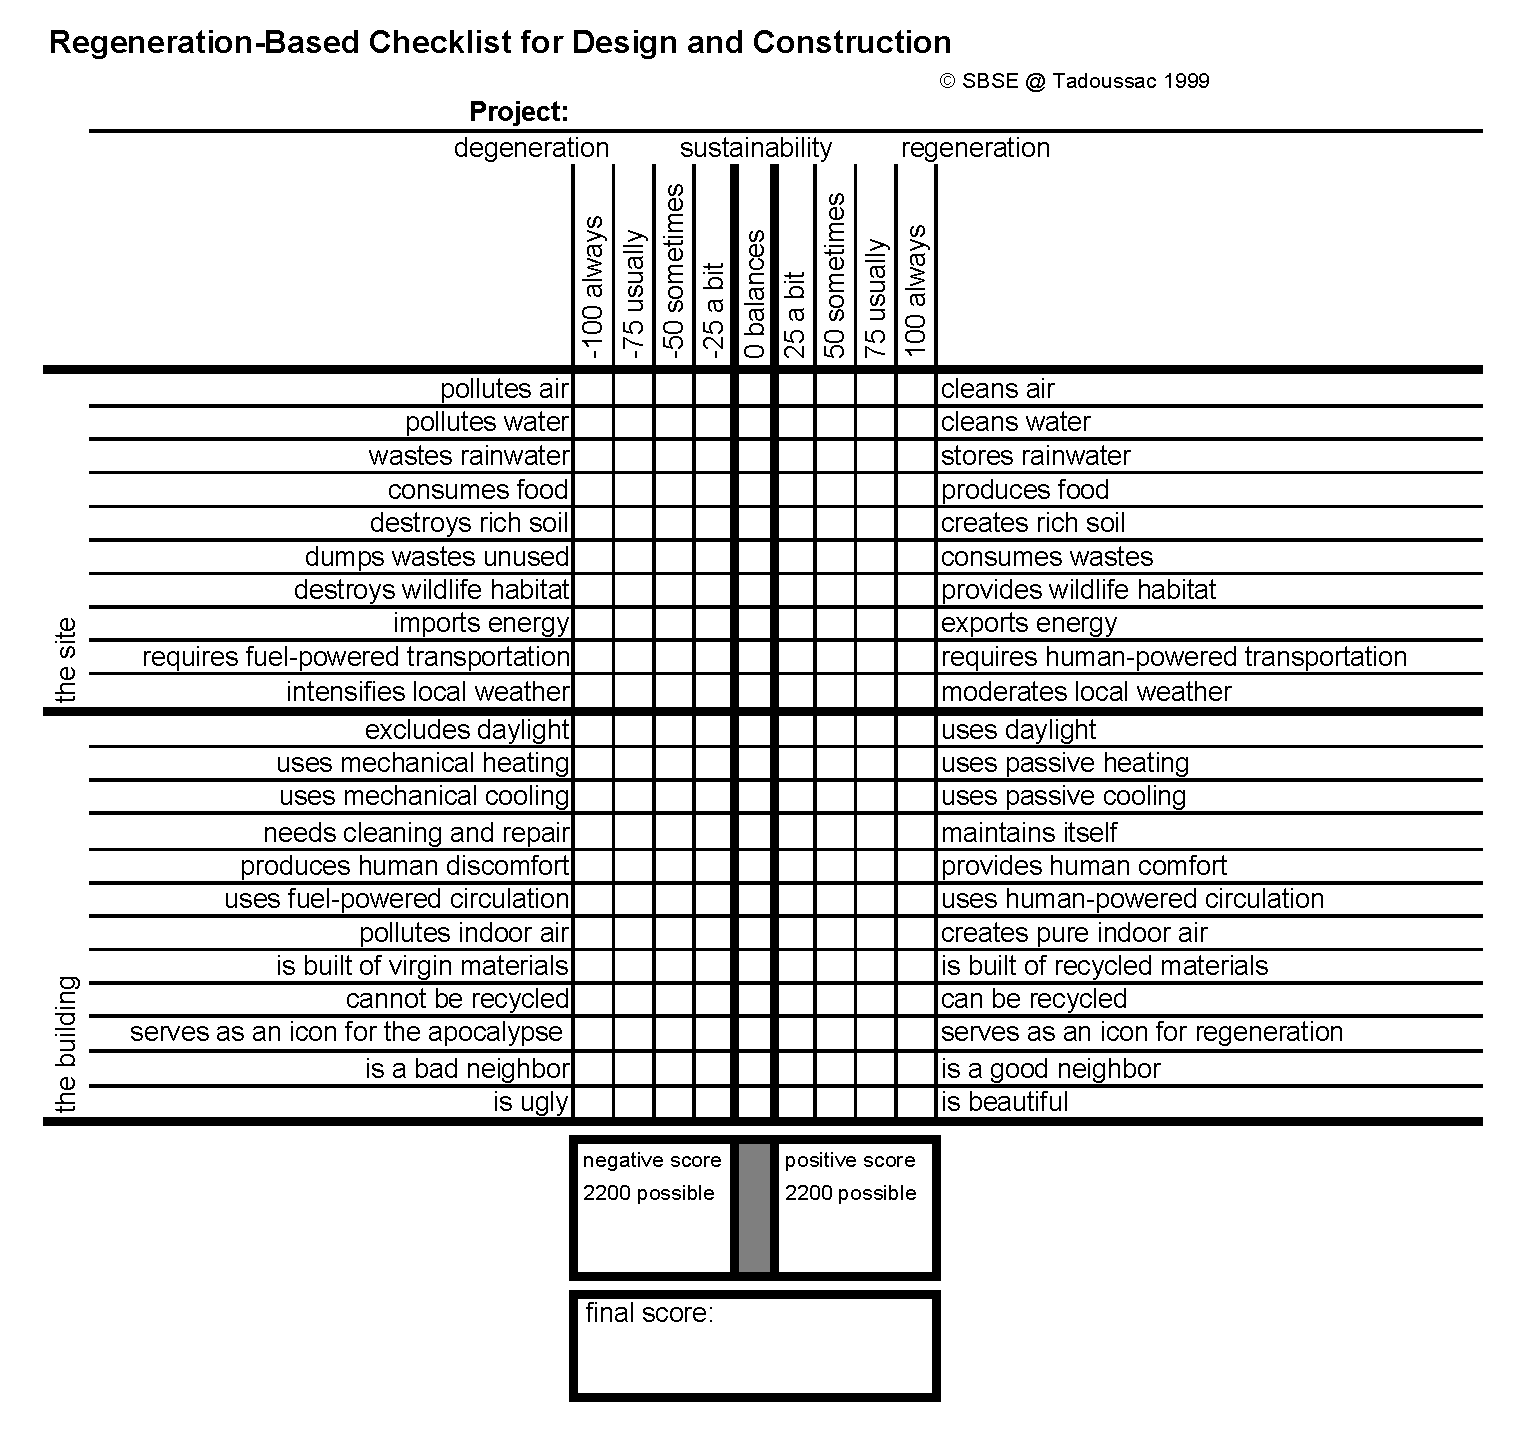 Regeneration-Based Checklist For Design And Construction